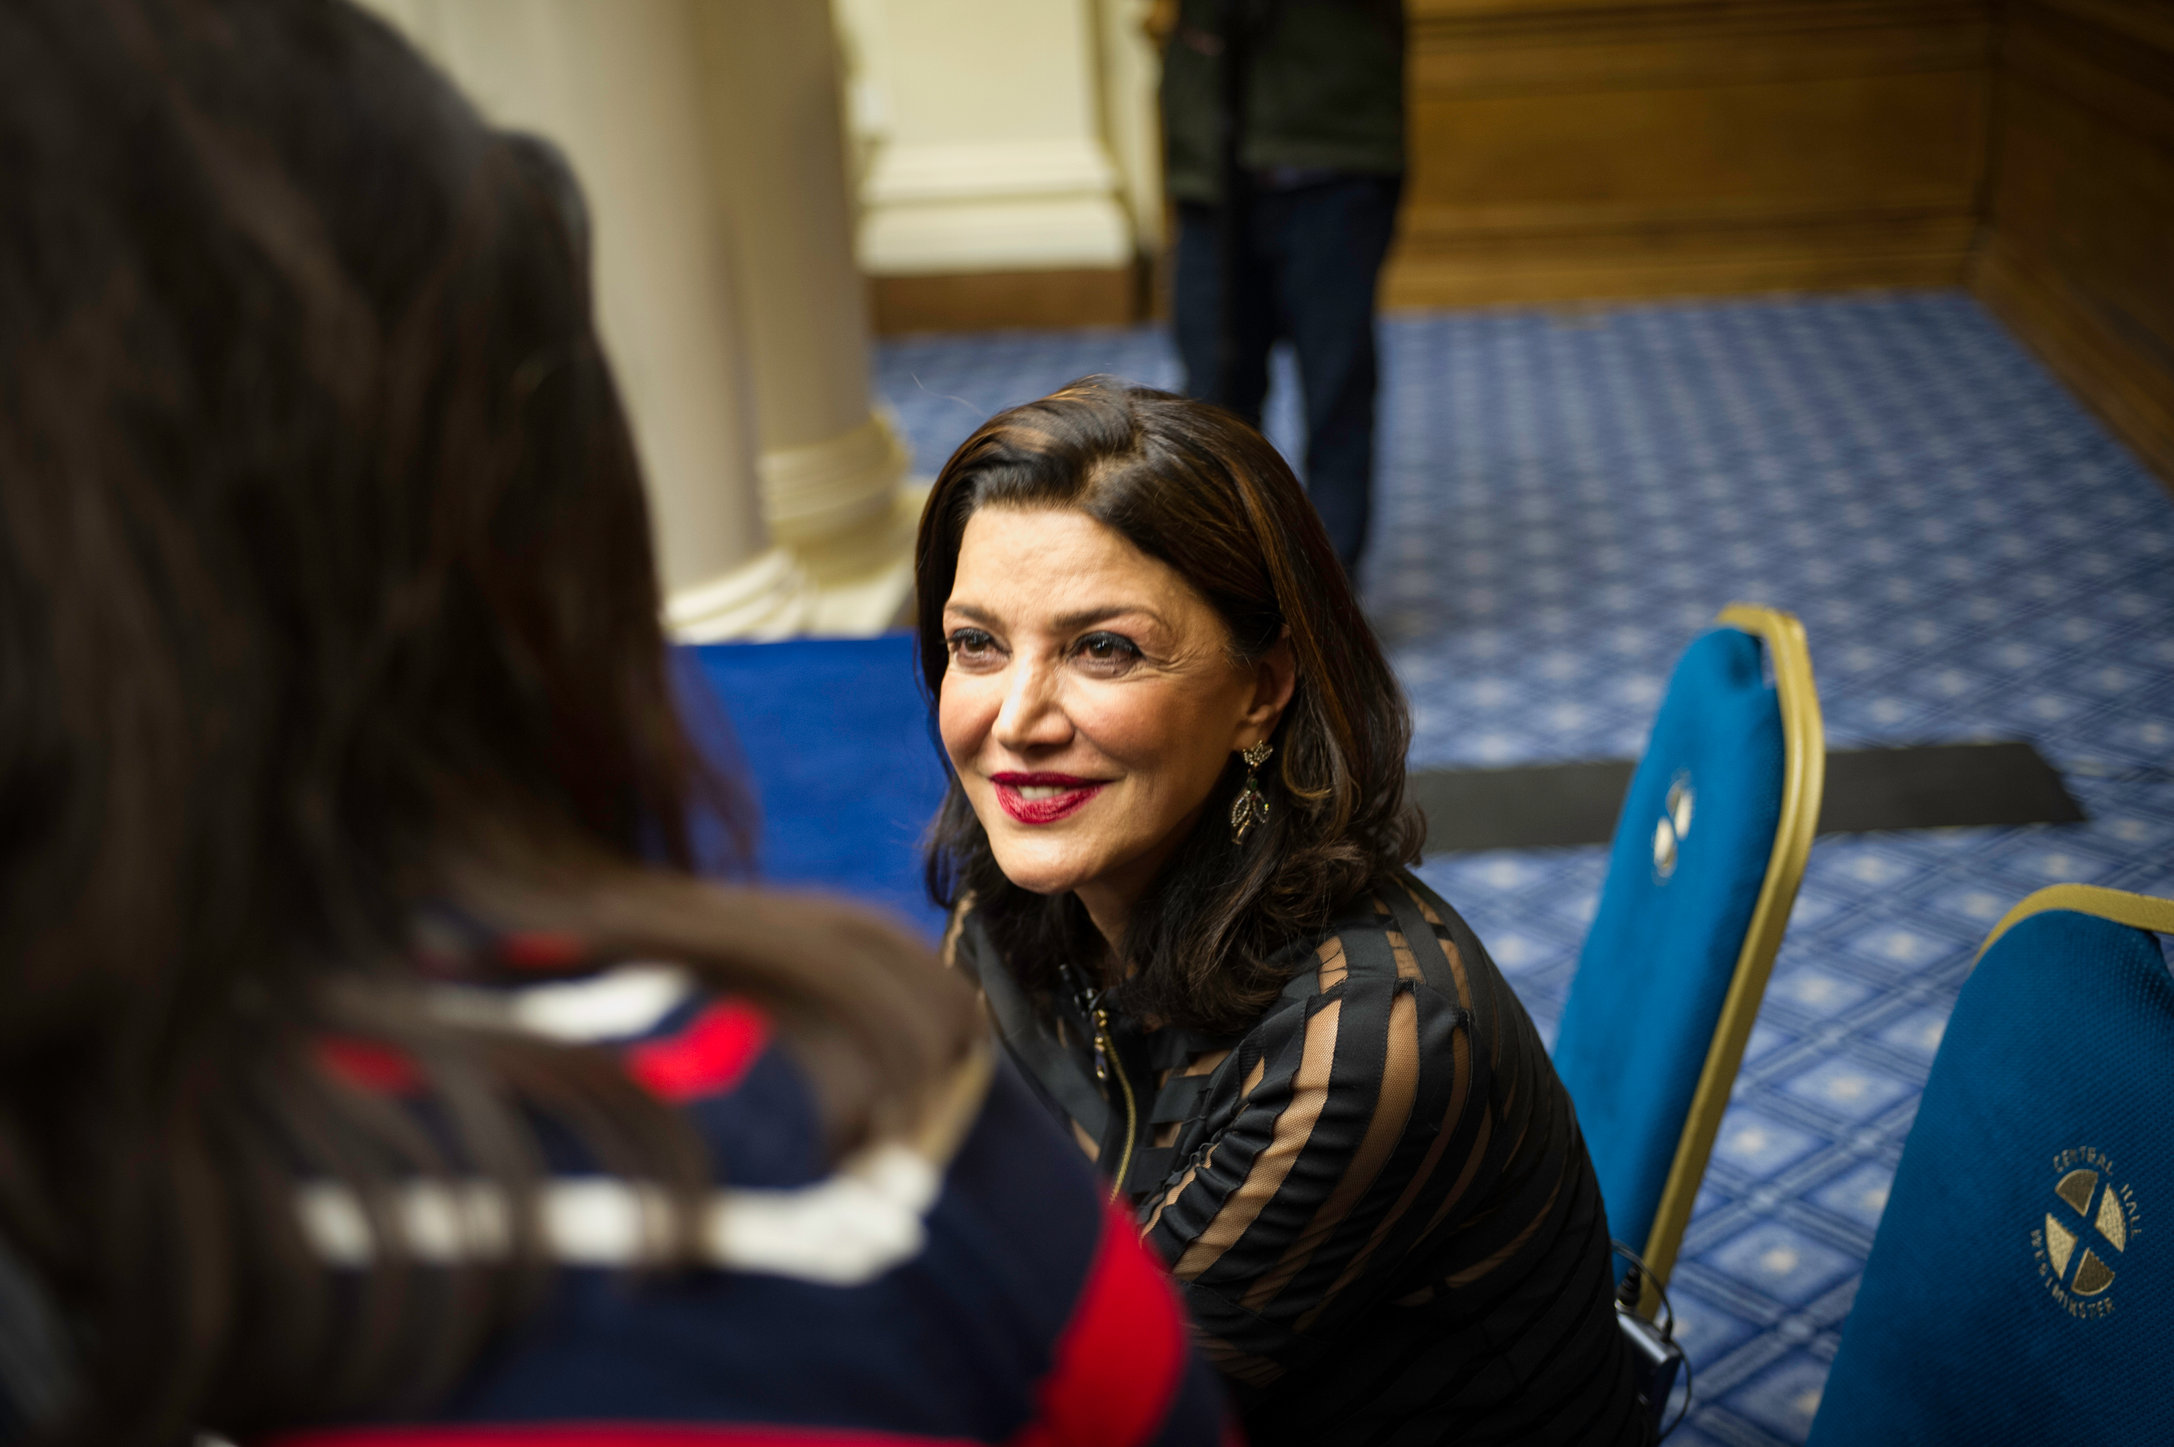 Ludovic_Robert_Photographer_Aneveningwith_Shohreh_Aghdashloo_November_2013-20131129-0396.jpg